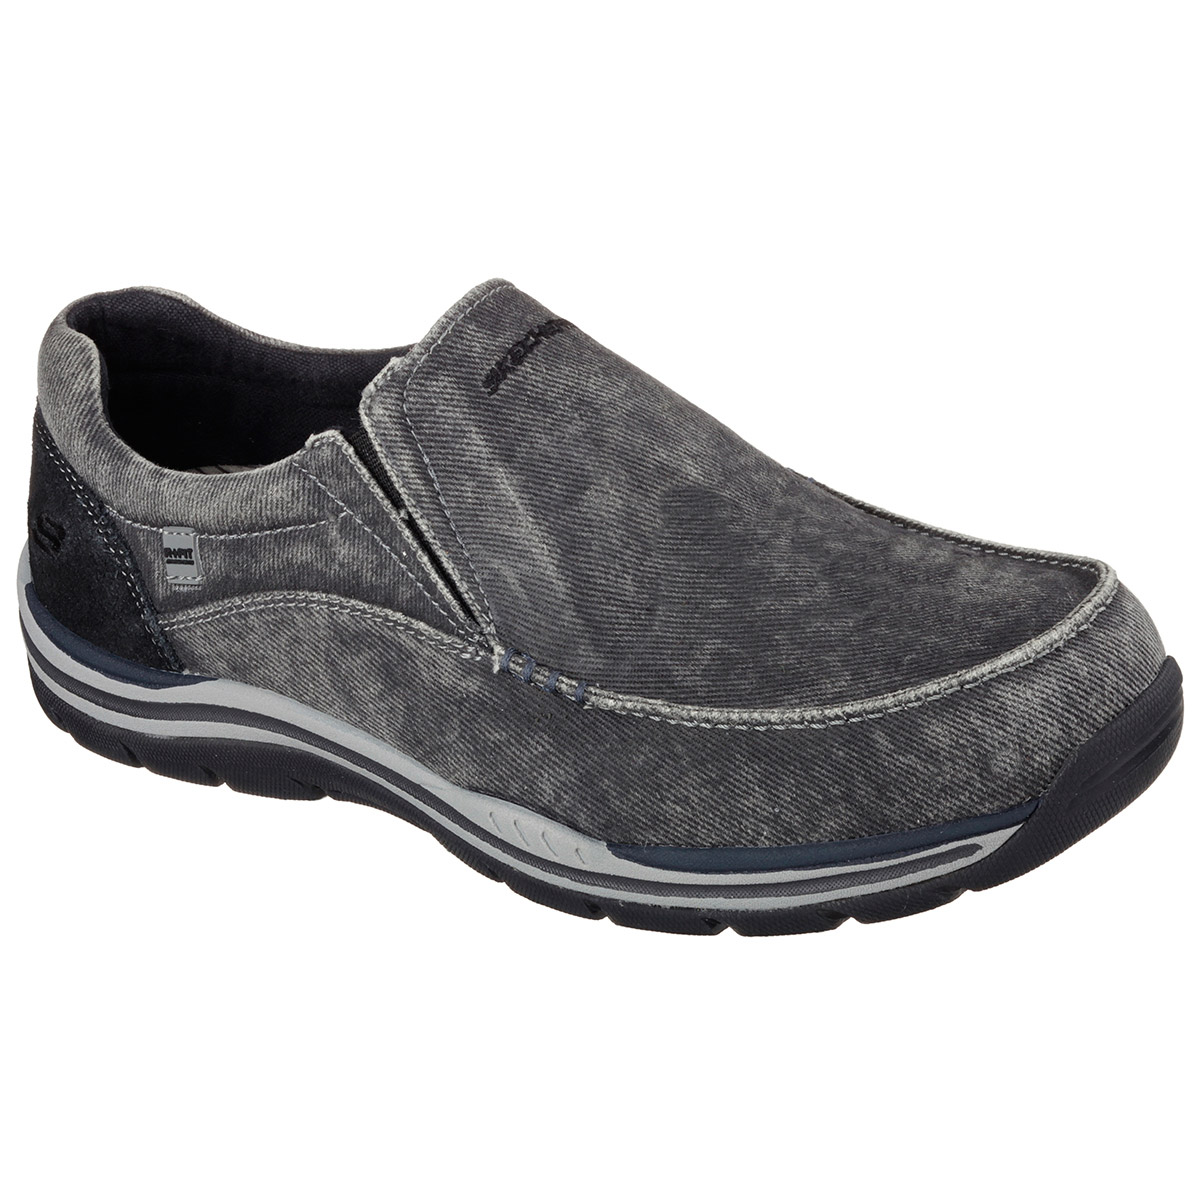 Skechers Men's Relaxed Fit: Expected - Avillo - Black, 12